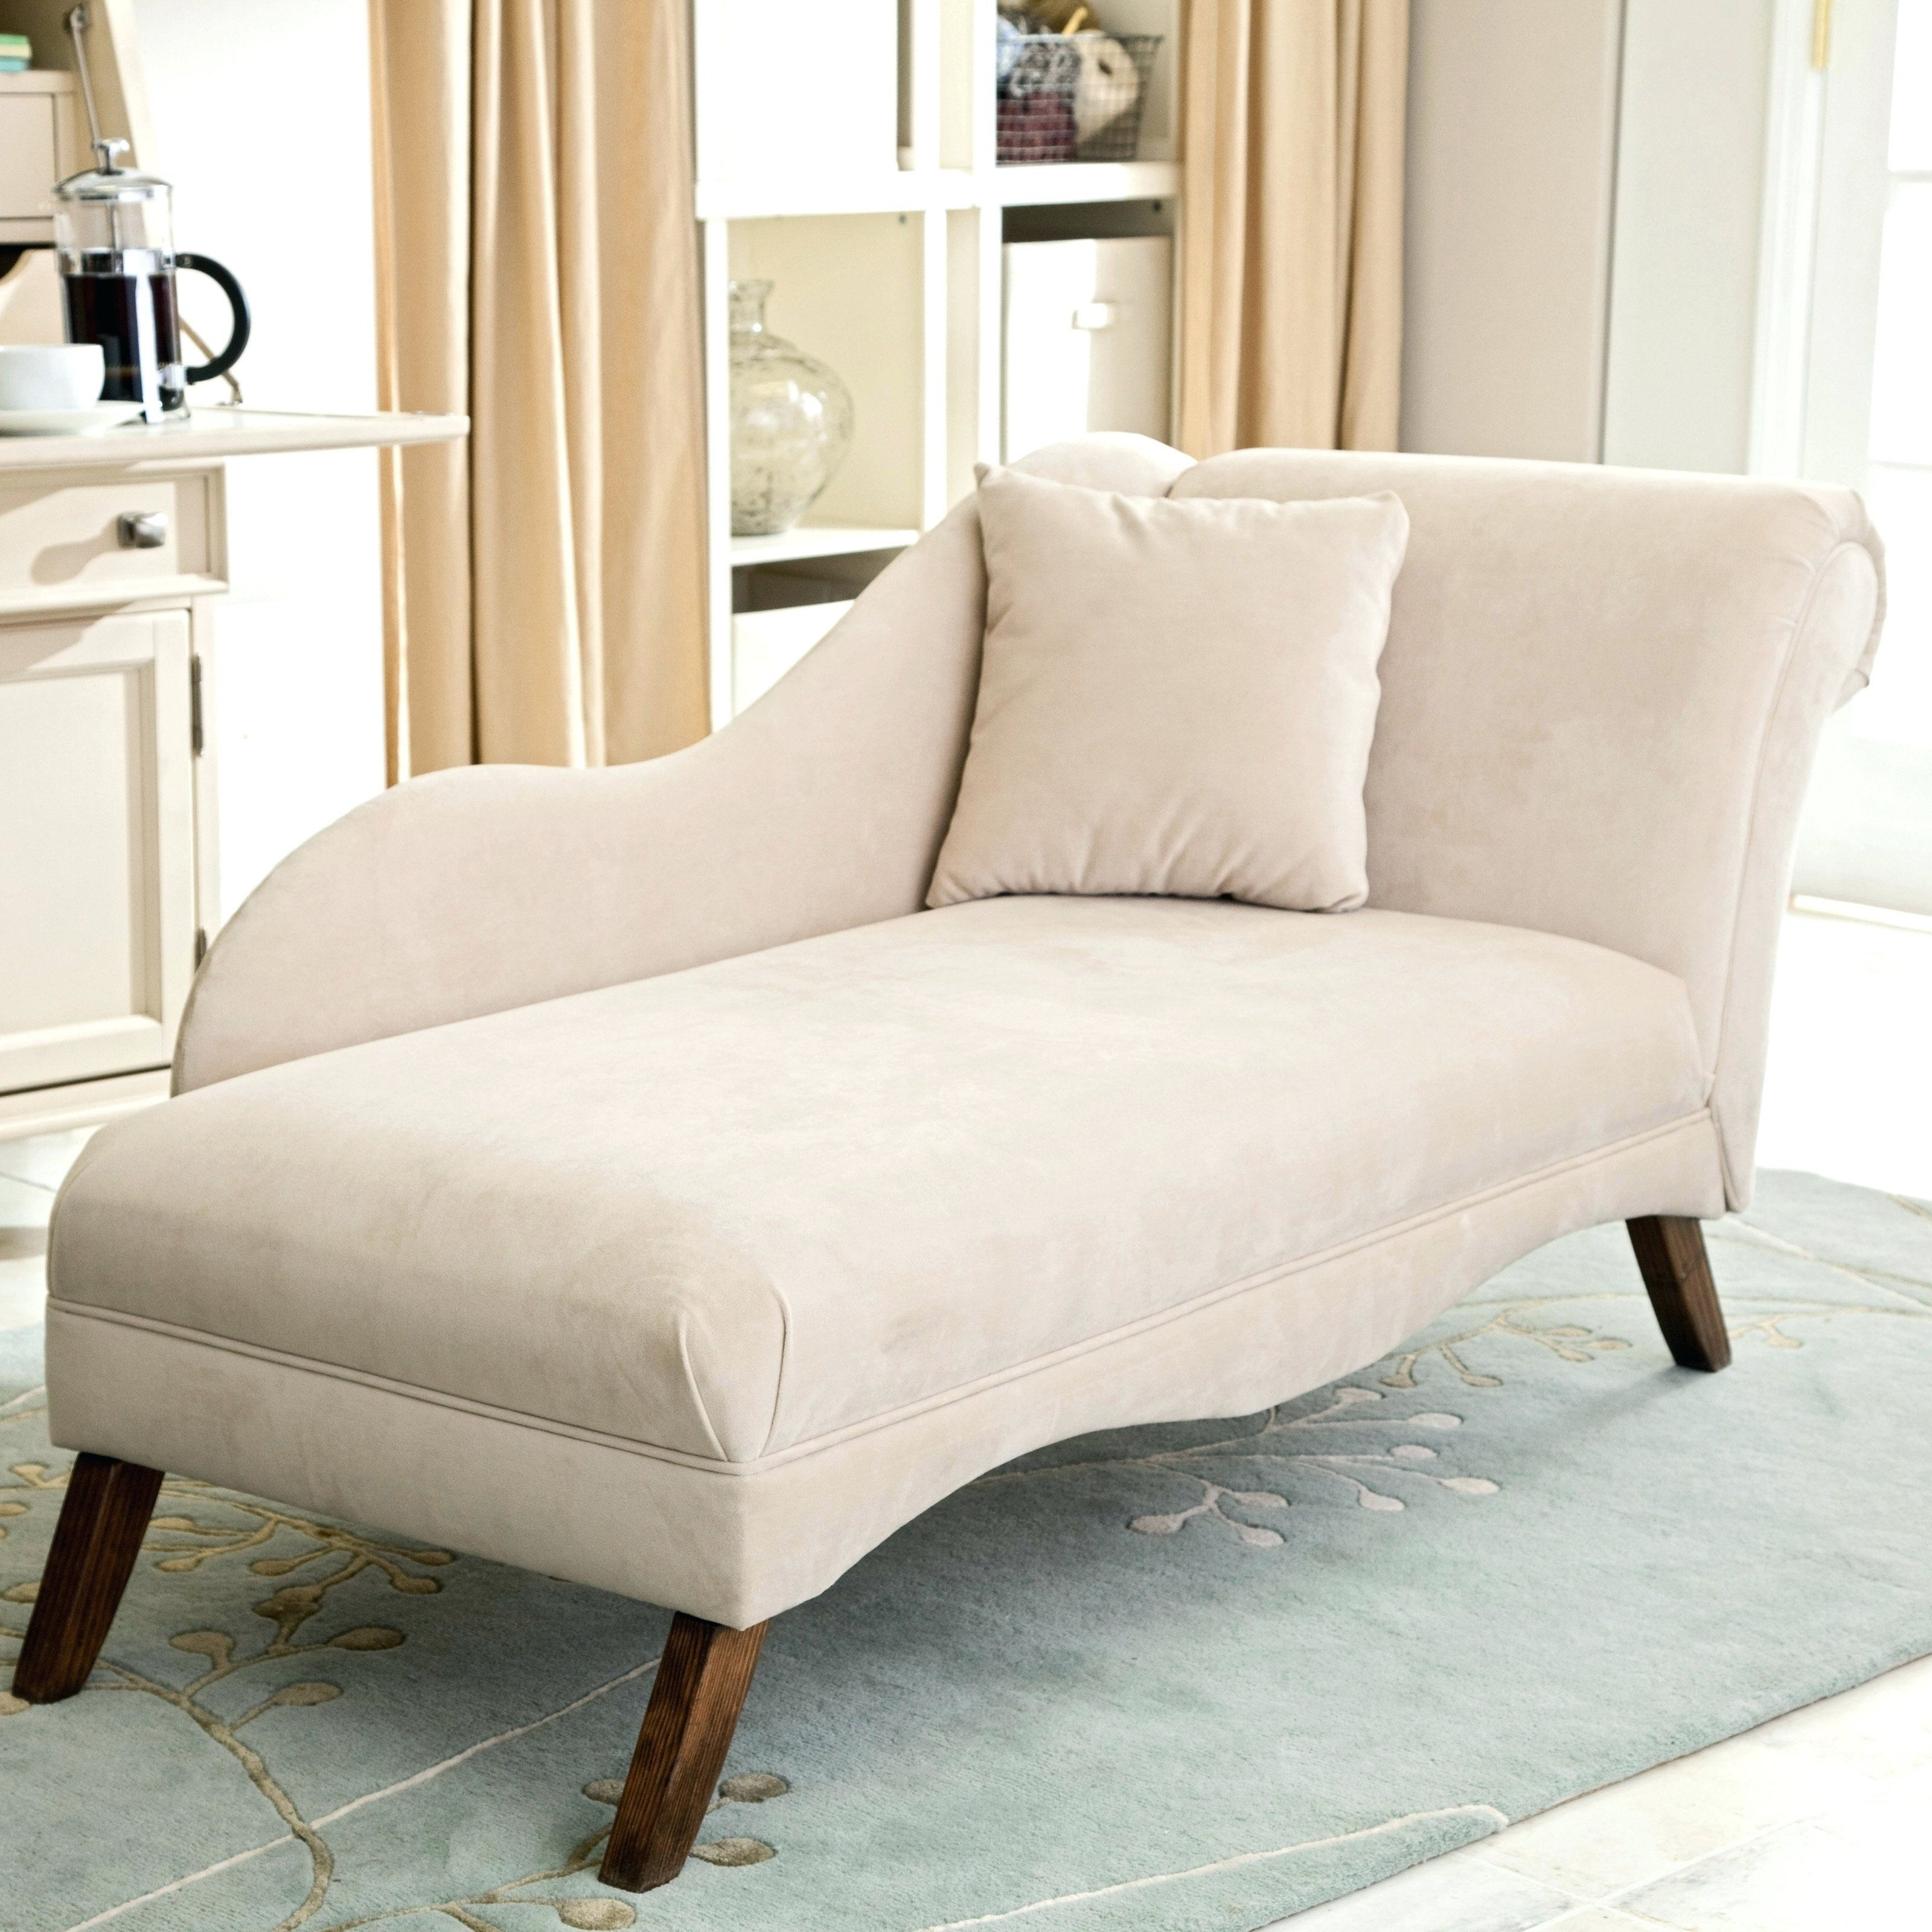 Upholstered Chaise Lounges Regarding Preferred Upholstered Chaise Lounge Chairs • Lounge Chairs Ideas (View 3 of 15)